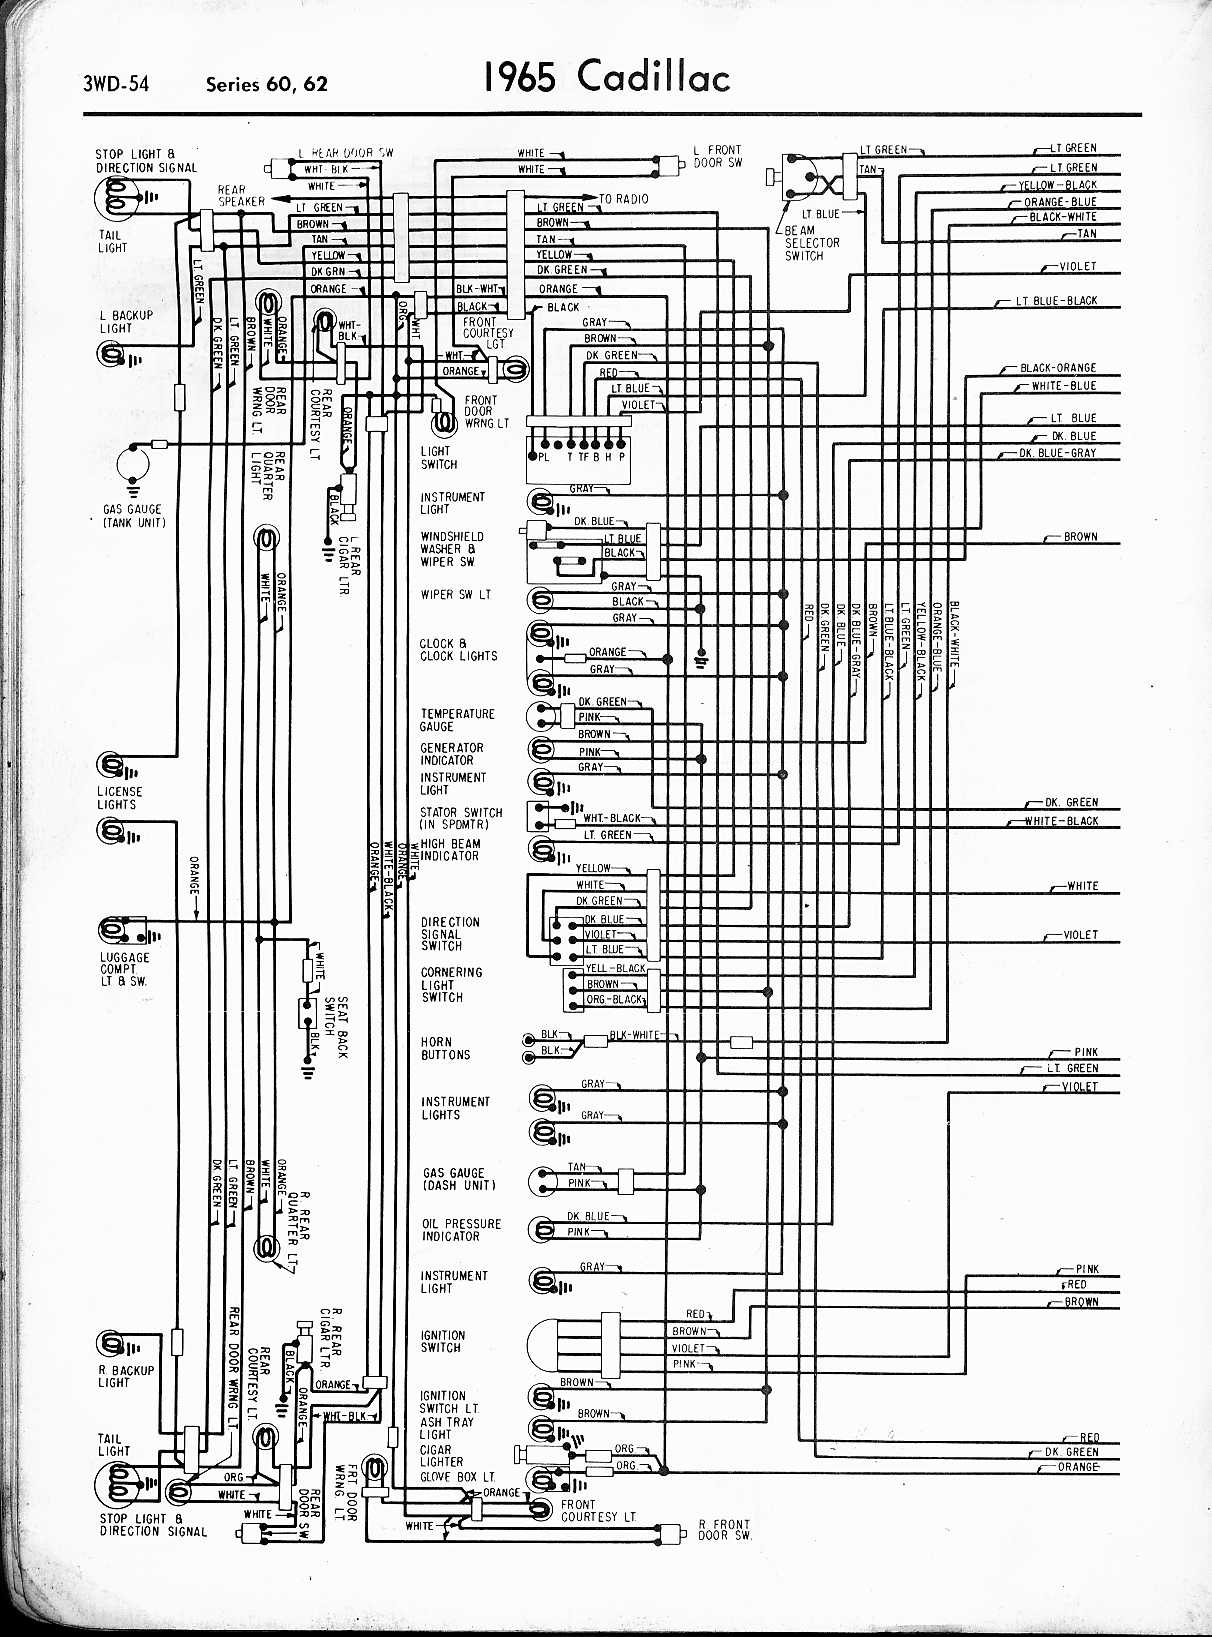 2003 Cadillac Deville Wiring Diagram Electrical Schematics Vw Engine Wires Cap Cts 05 Mazda Tribute Starter 1966